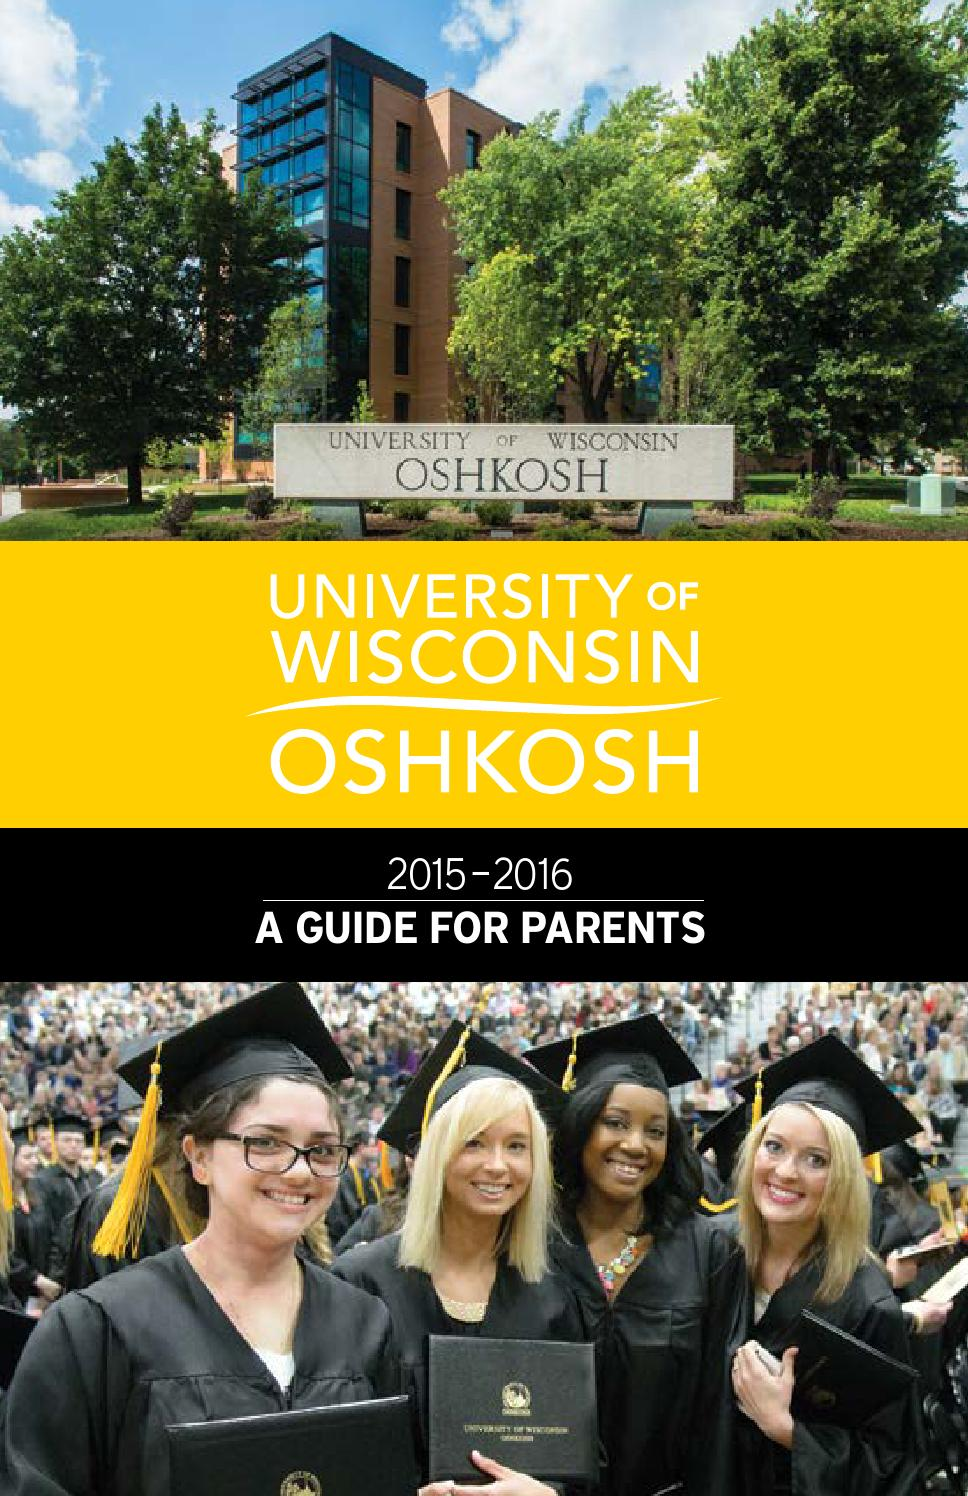 University Of Wisconsin Oshkosh 2015 Guide For Parents By